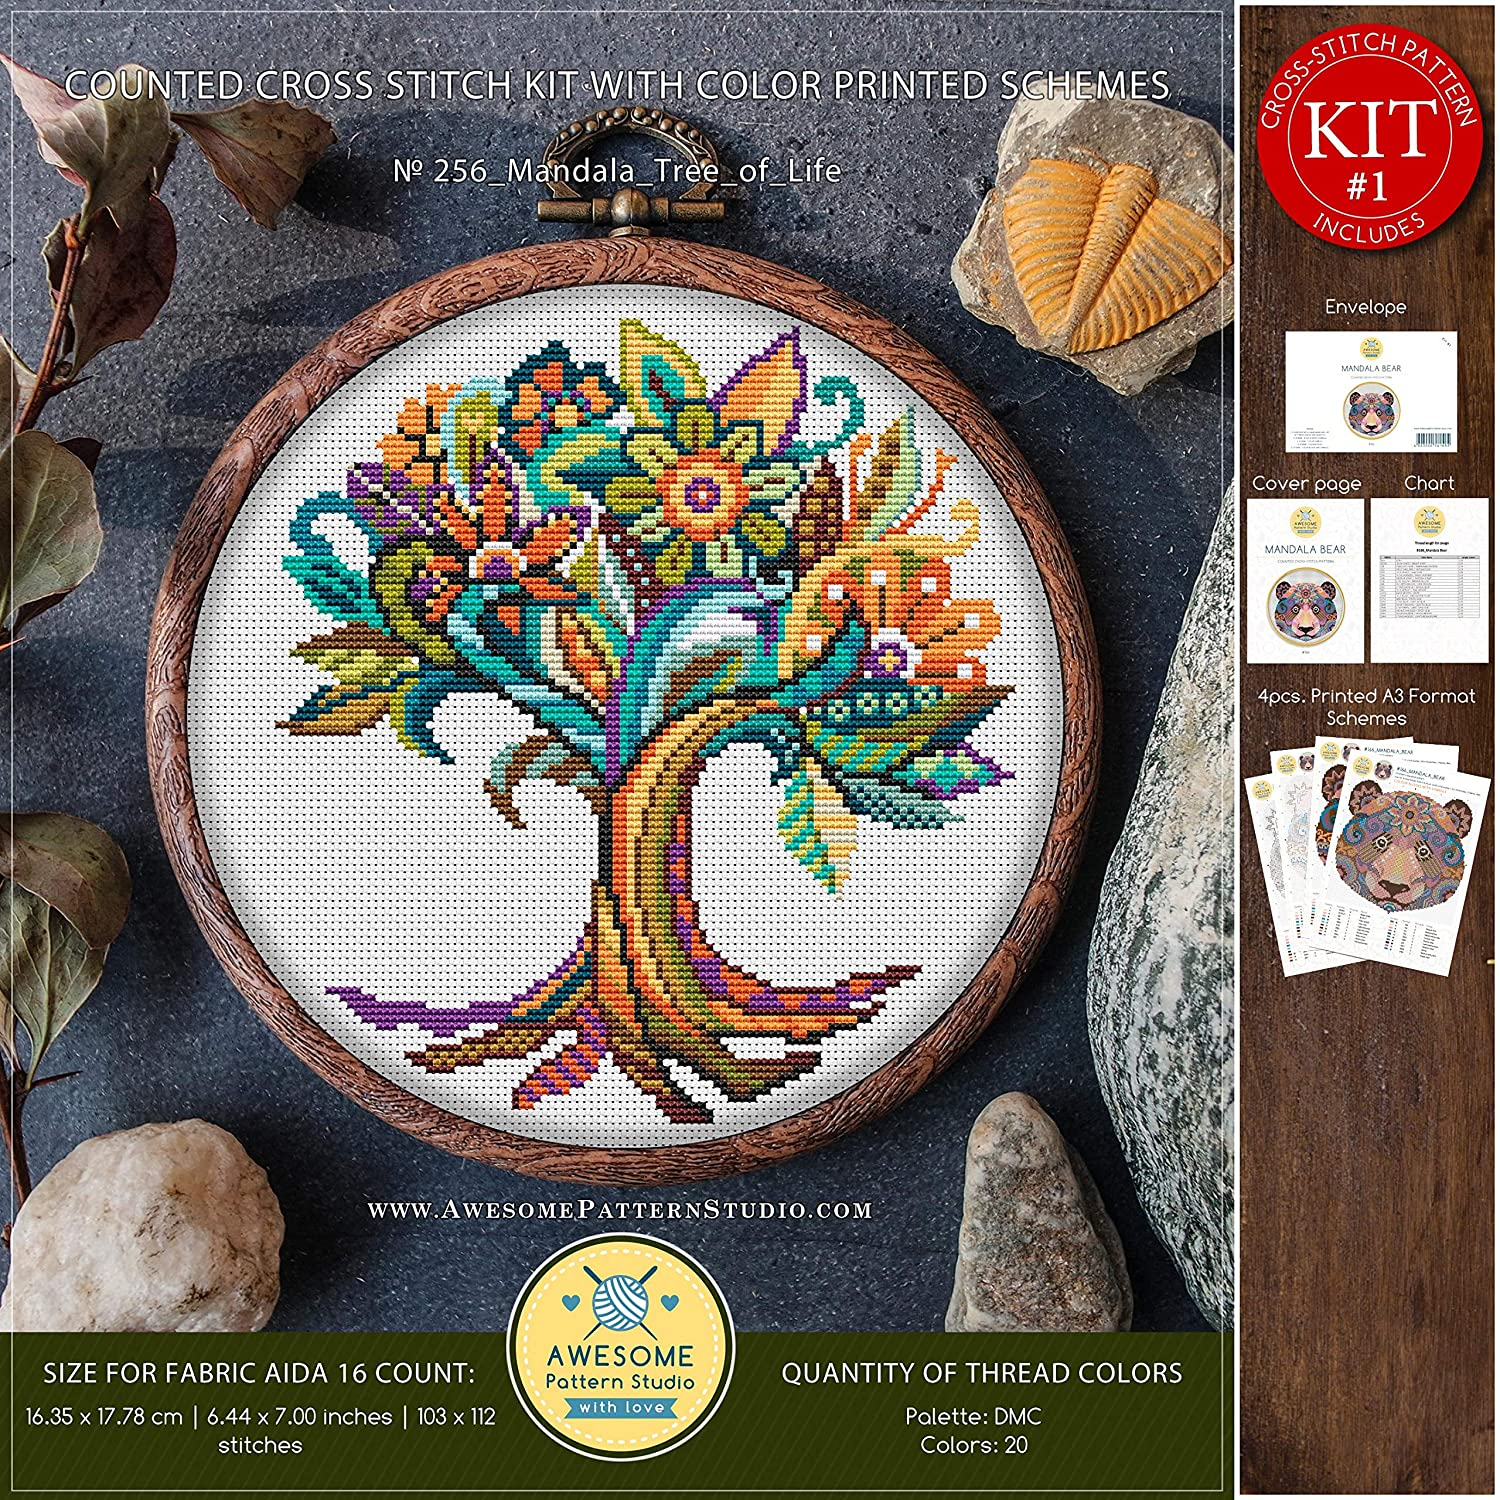 How to Cross Stitch Stitch Patterns Needlepoint Kits Mandala Tree of Life #K256 Embroidery Cross Stitch Kit Nature Cross Stitch Patterns